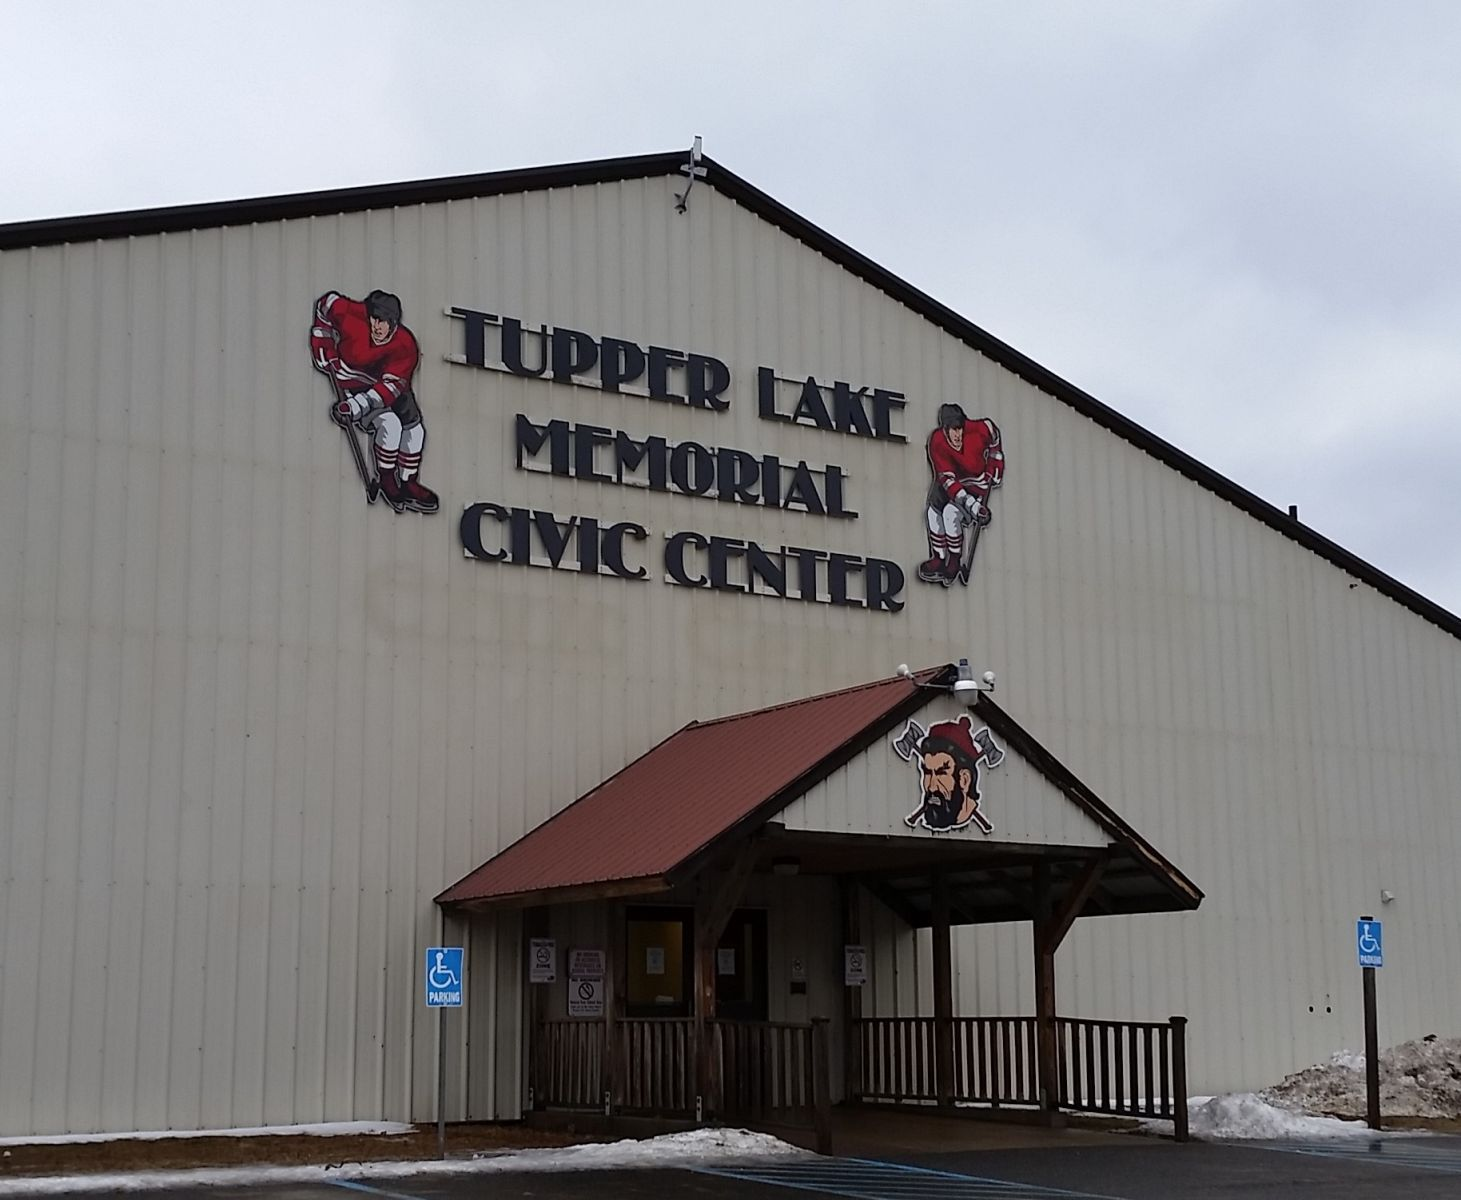 Tupper Lake Memorial Civic Center